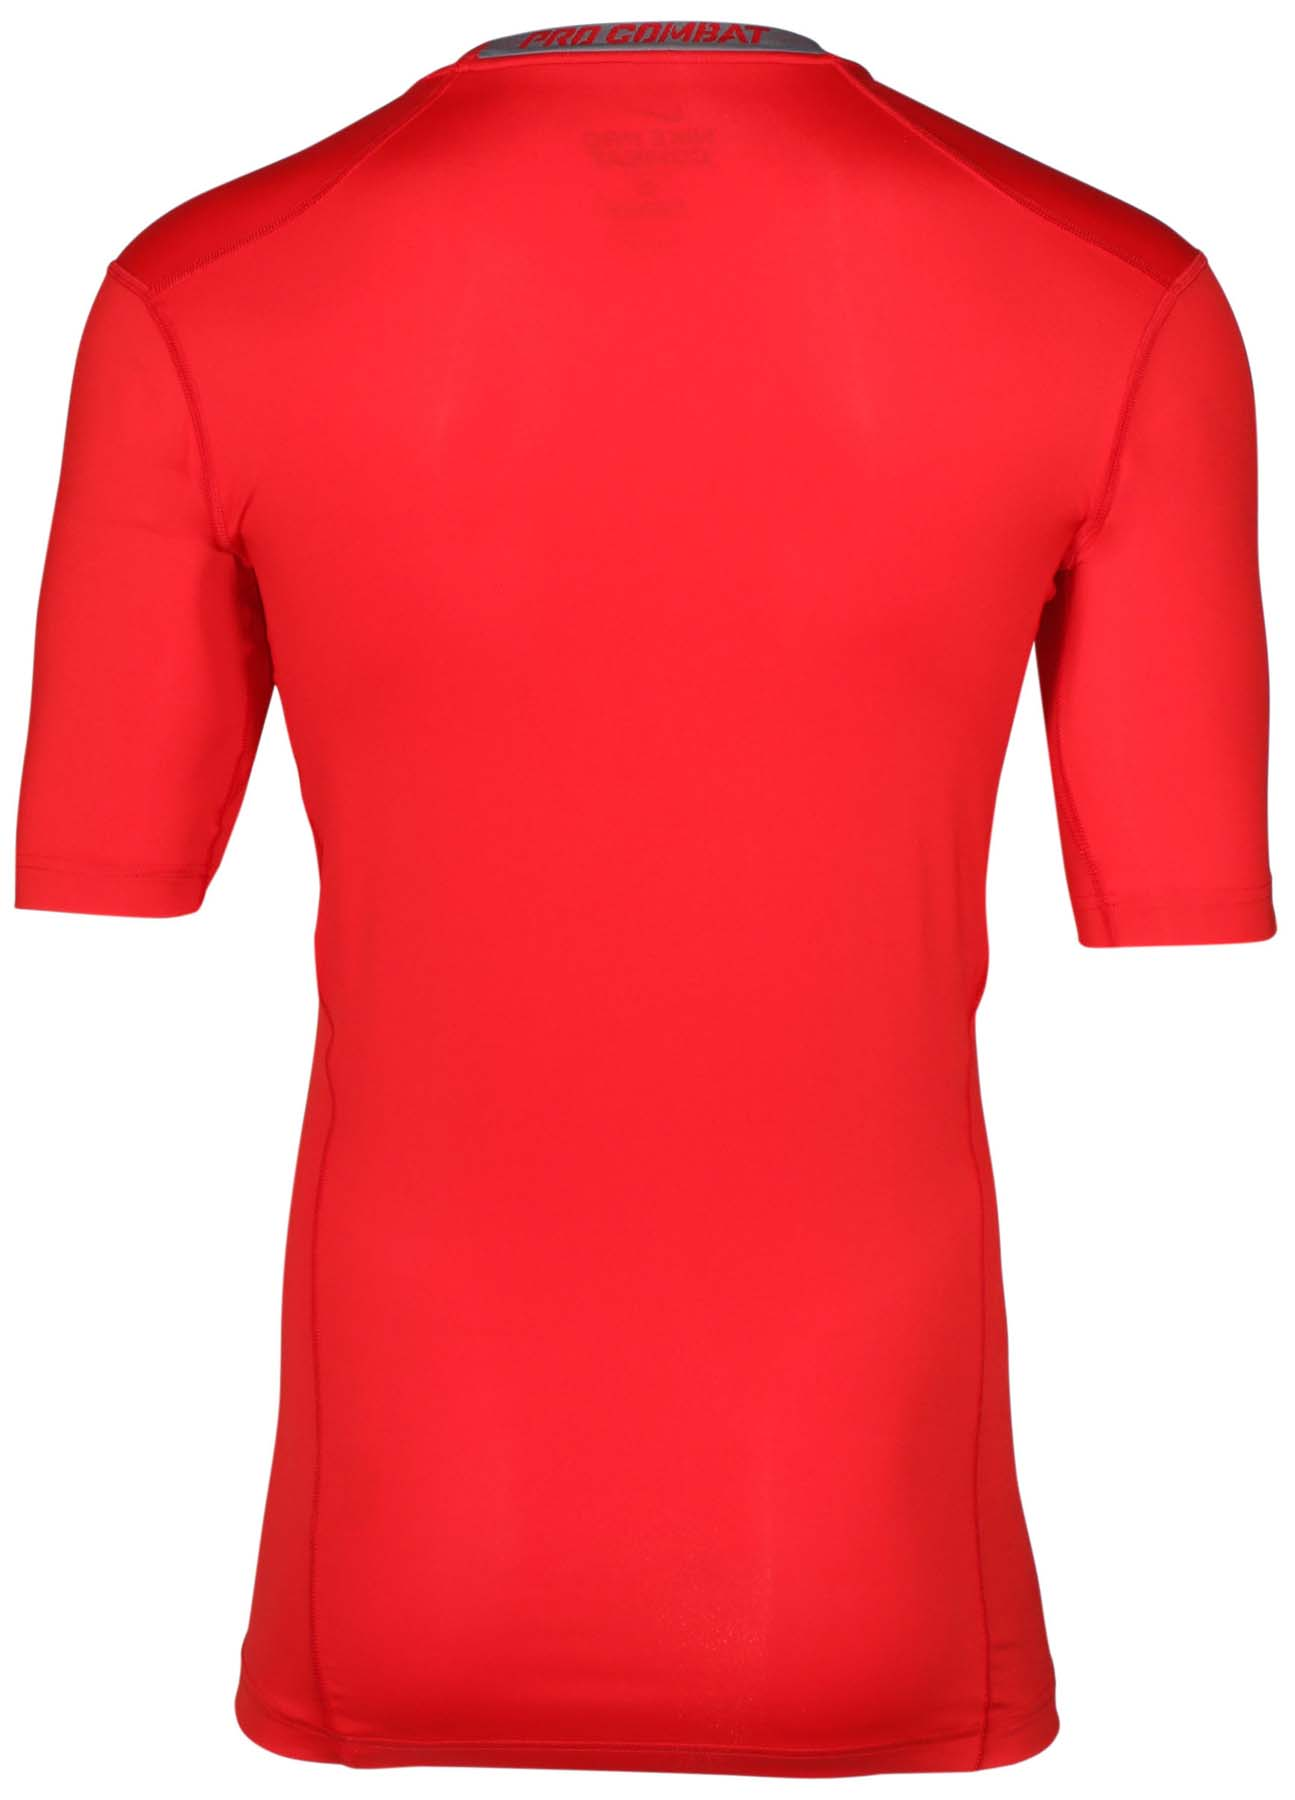 Nike-Men-039-s-Dri-Fit-Core-Compression-Half-Sleeve-Training-Shirt thumbnail 10